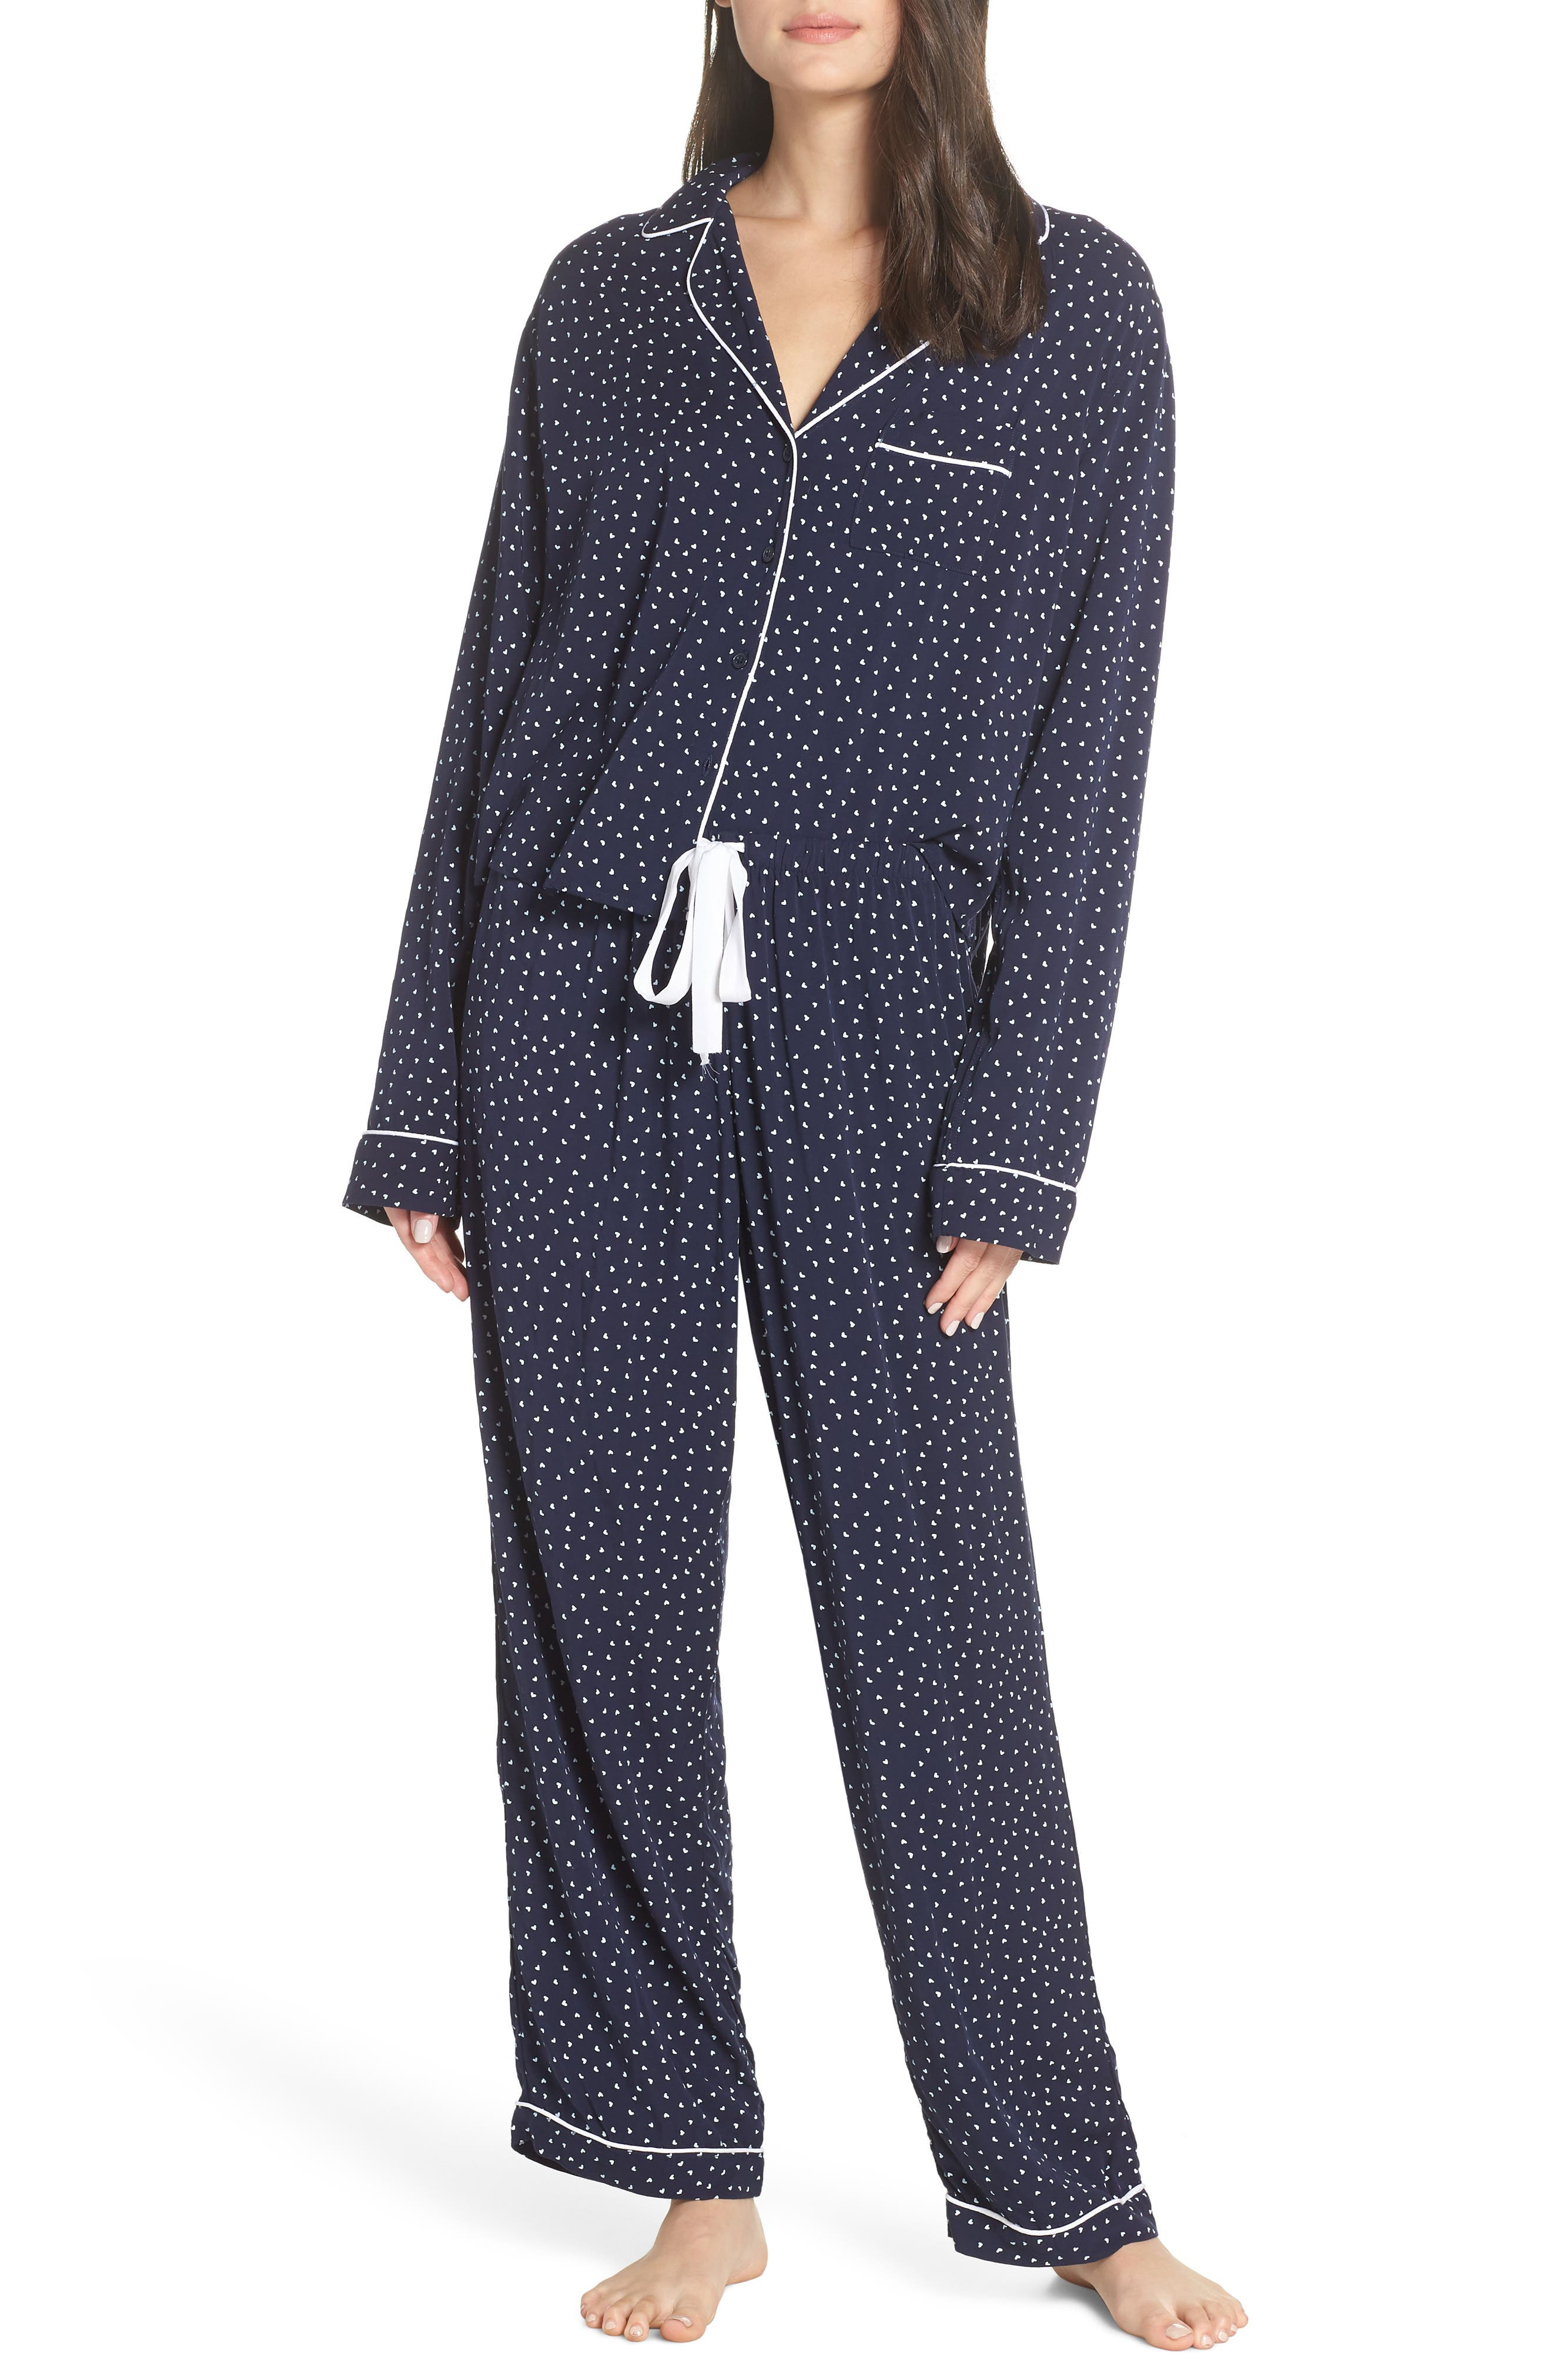 Heart Print Pajamas,                             Main thumbnail 1, color,                             NAVY MINI HEARTS